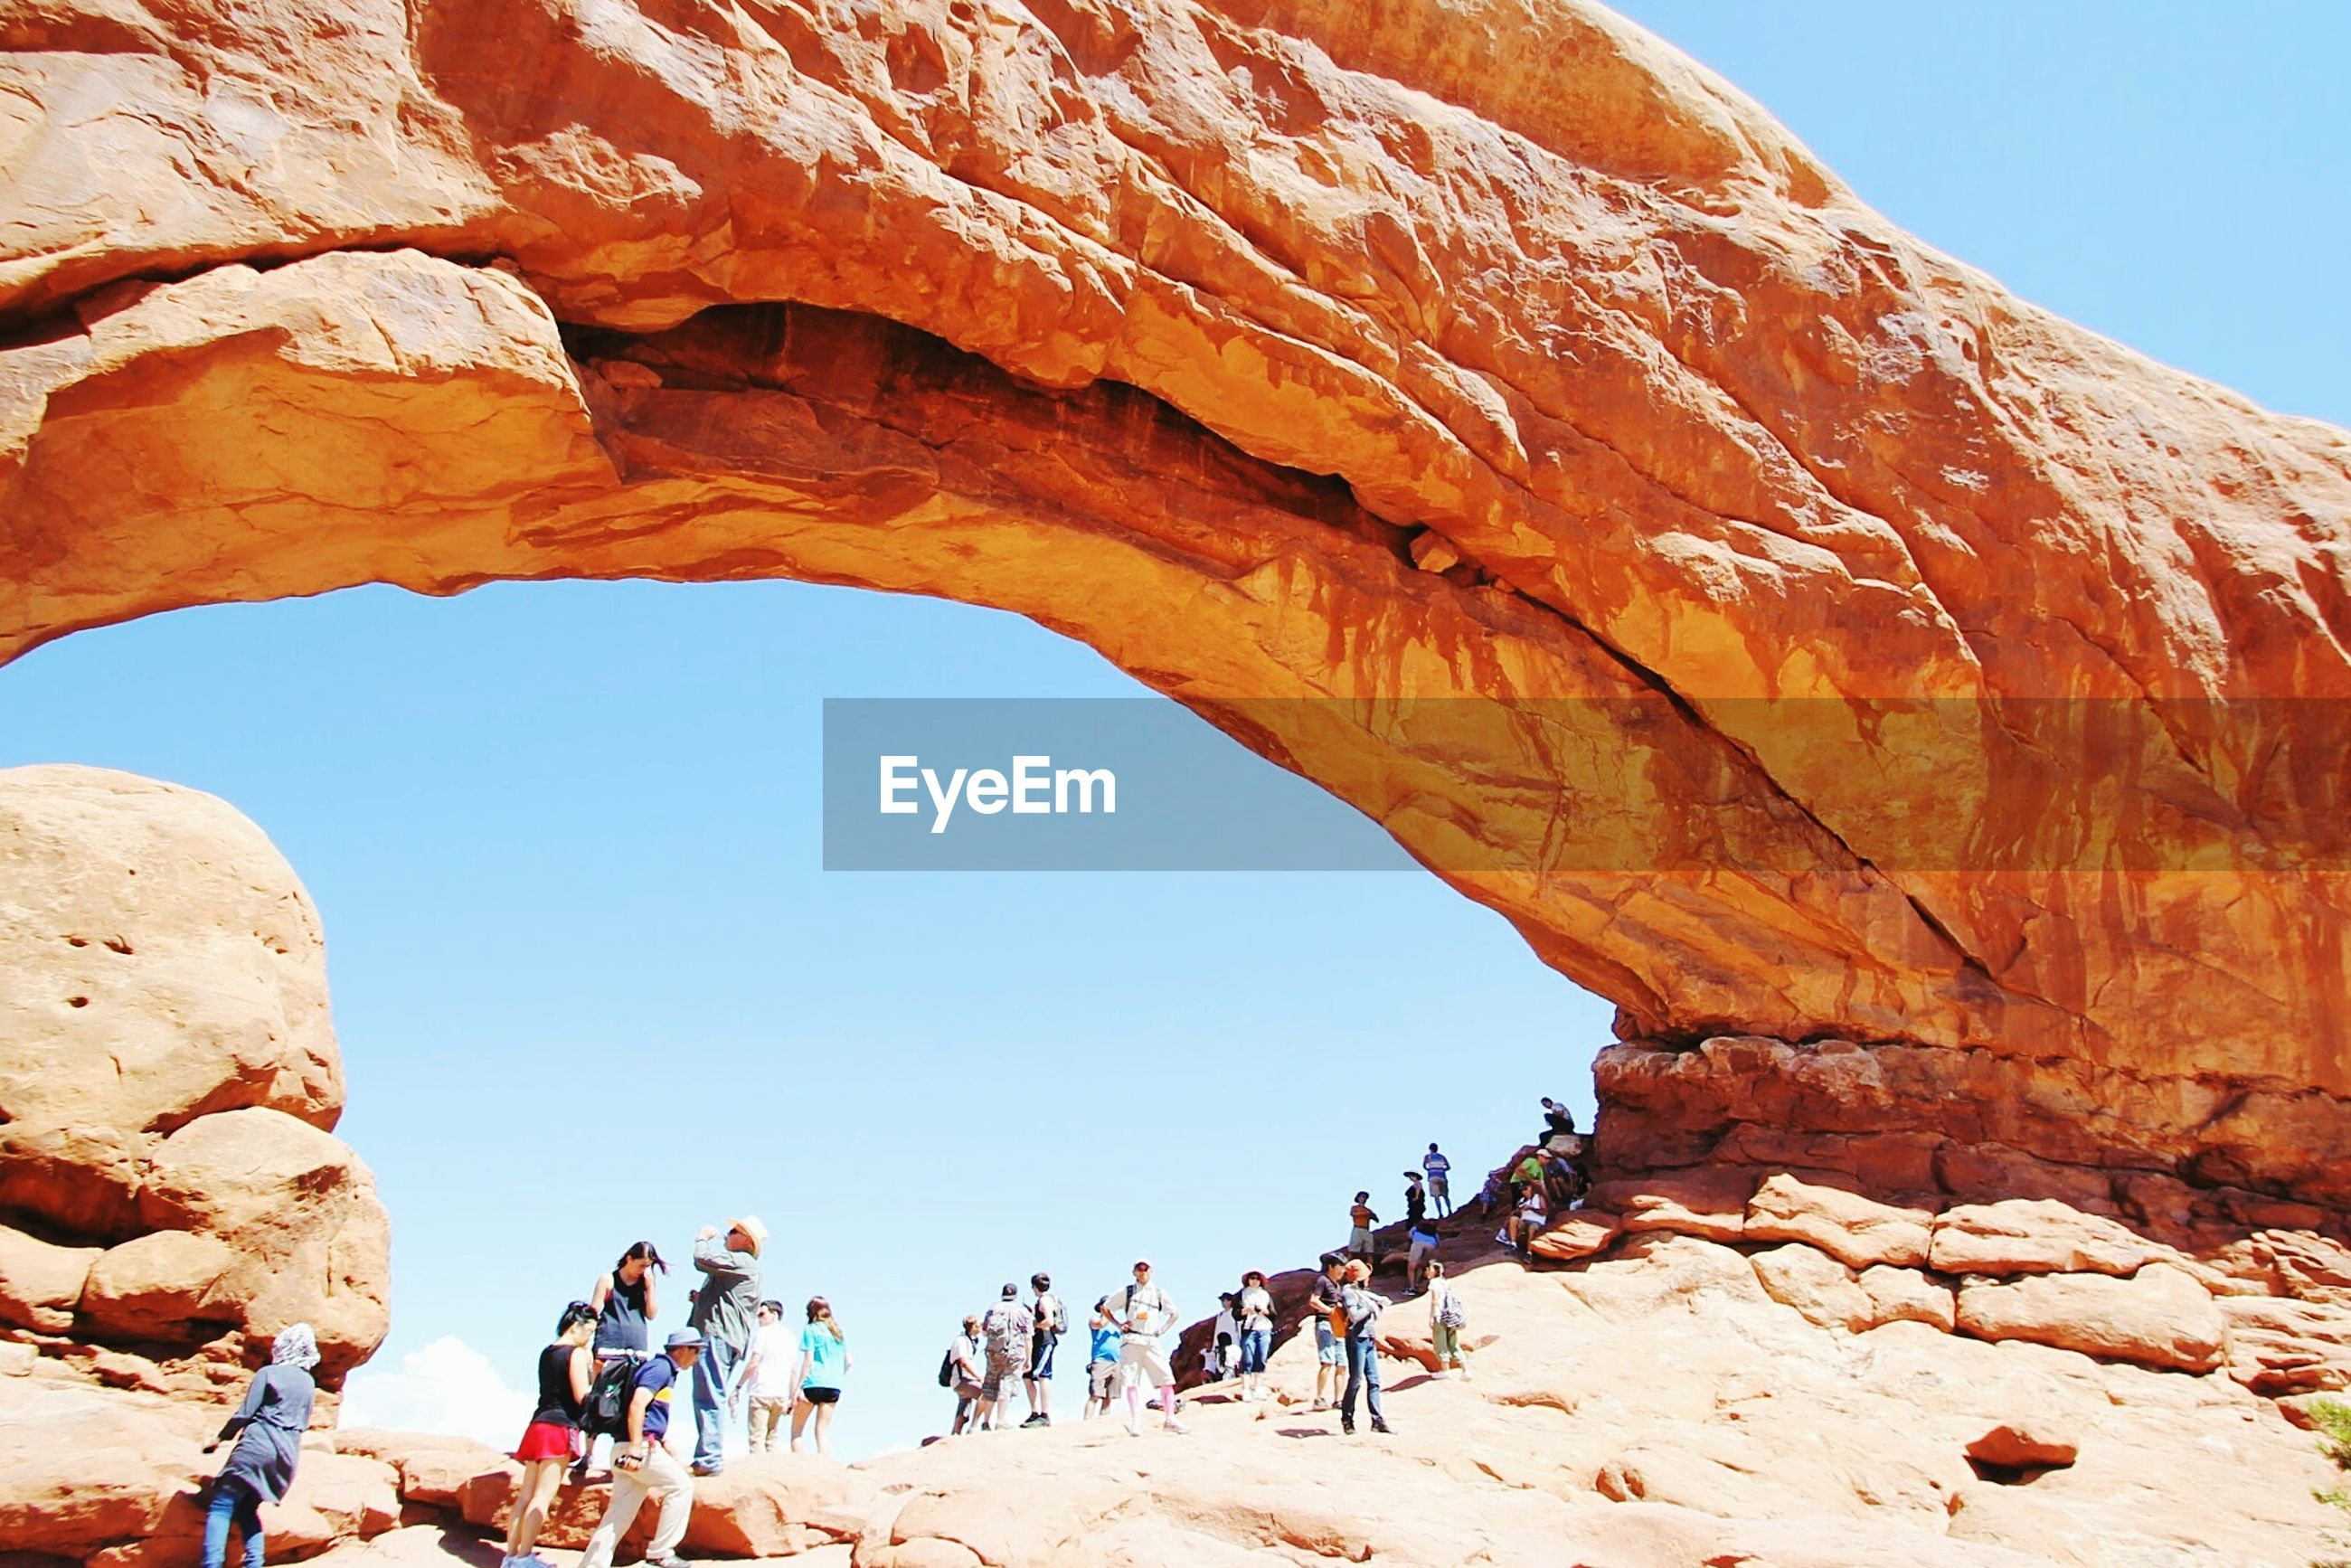 Tourists visiting arches national park against clear sky